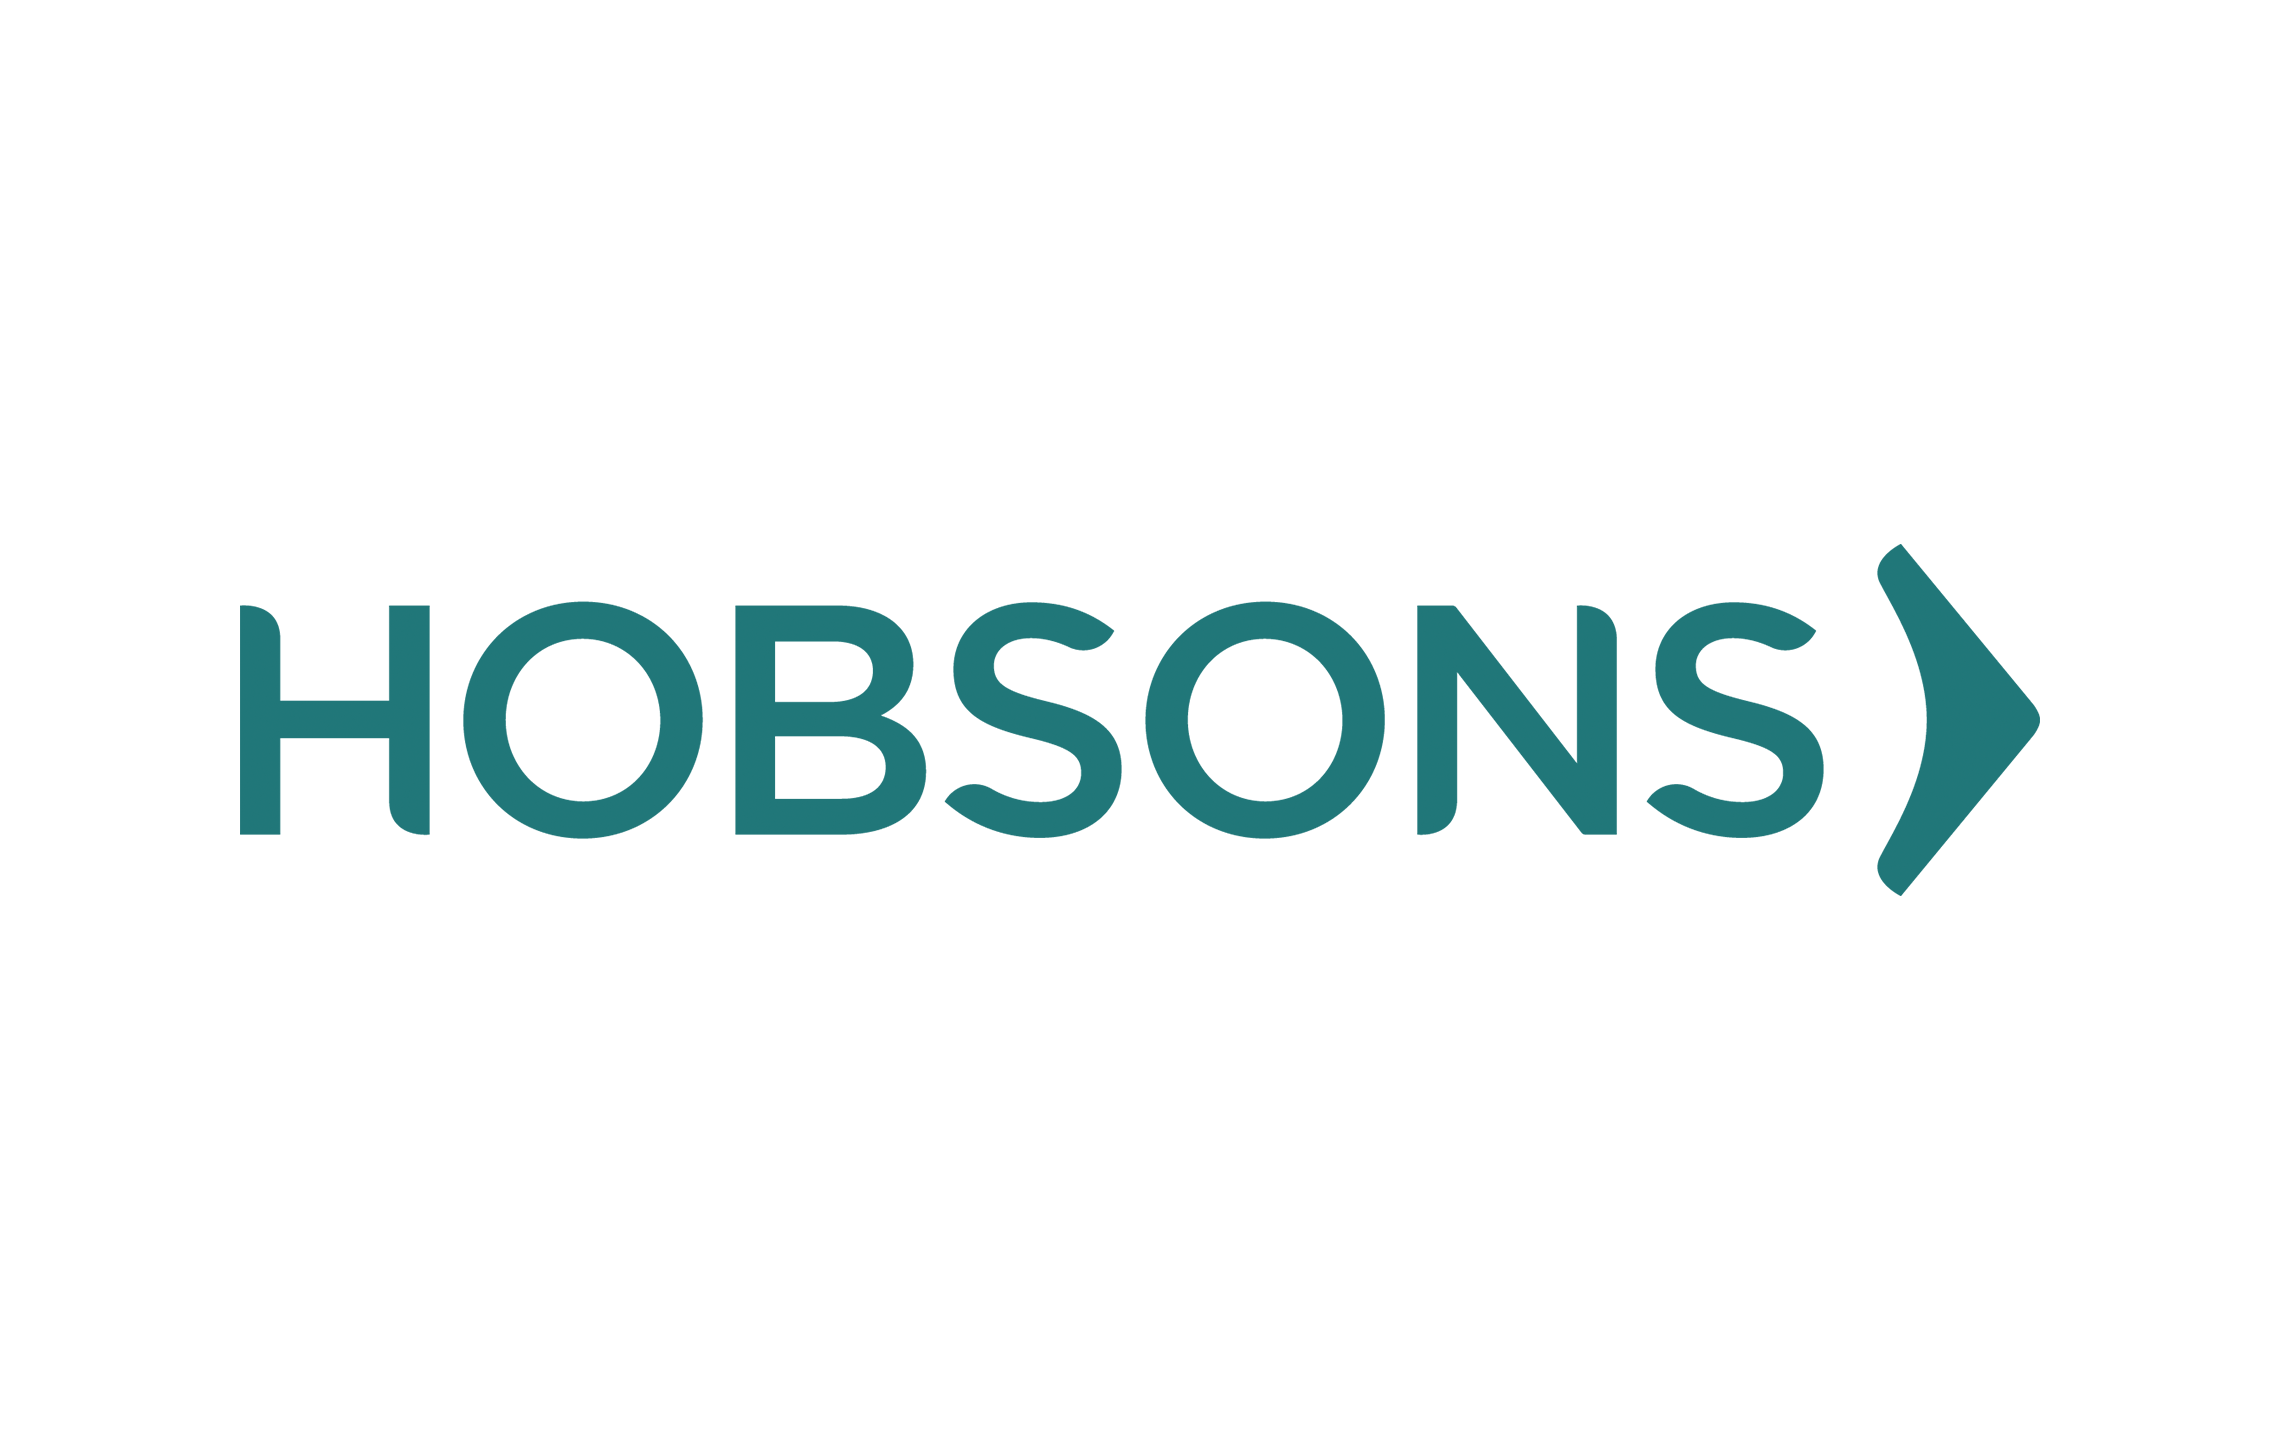 Message from Hobsons CEO